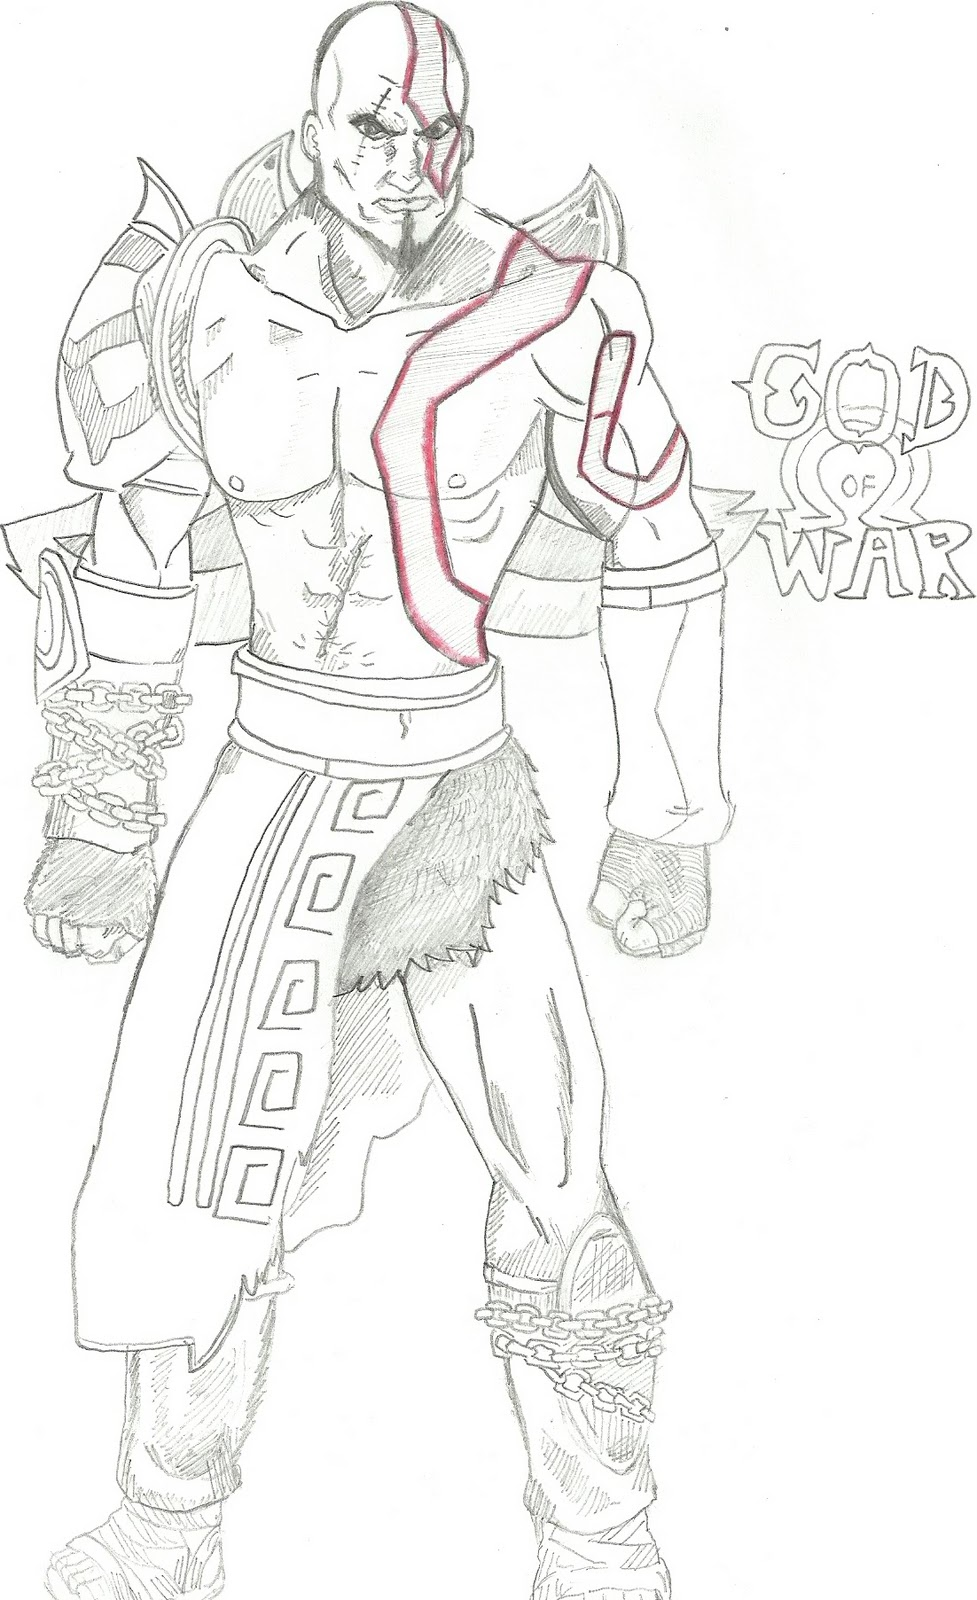 god of war coloring pages - photo#15